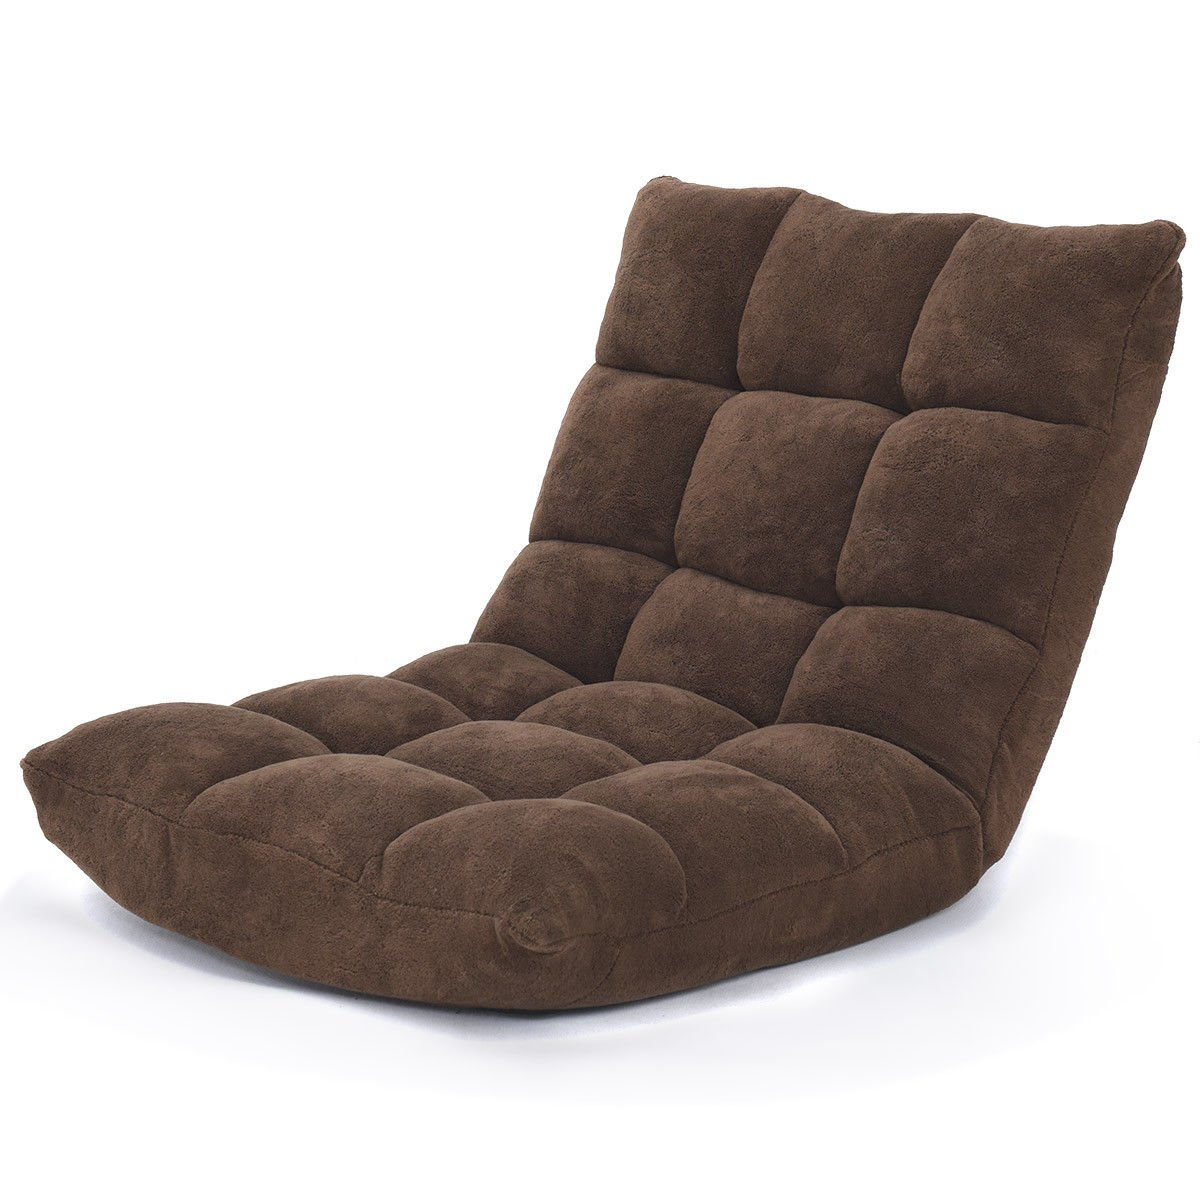 Giantex 14-Position Floor Folding Gaming Sofa Chair Lounger Folding Adjustable Sleeper Bed Couch Recliner (Brown) by Giantex